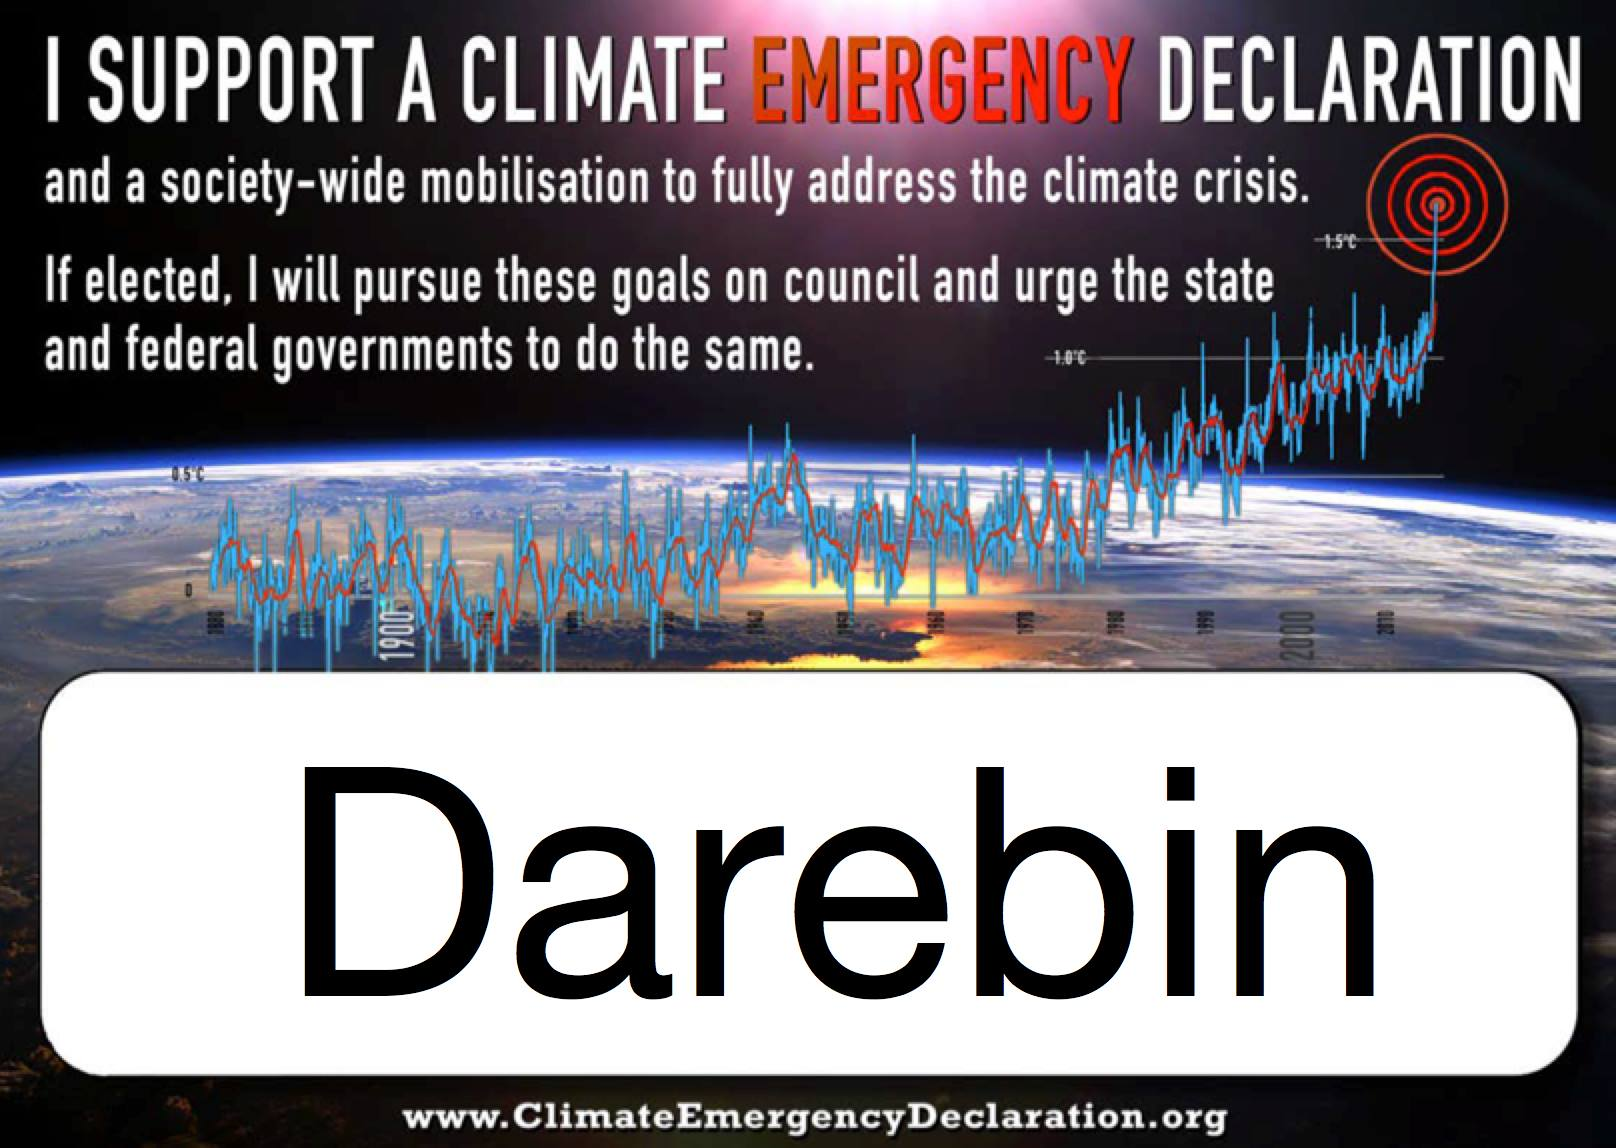 Climate_Emergency_Darebin.jpg